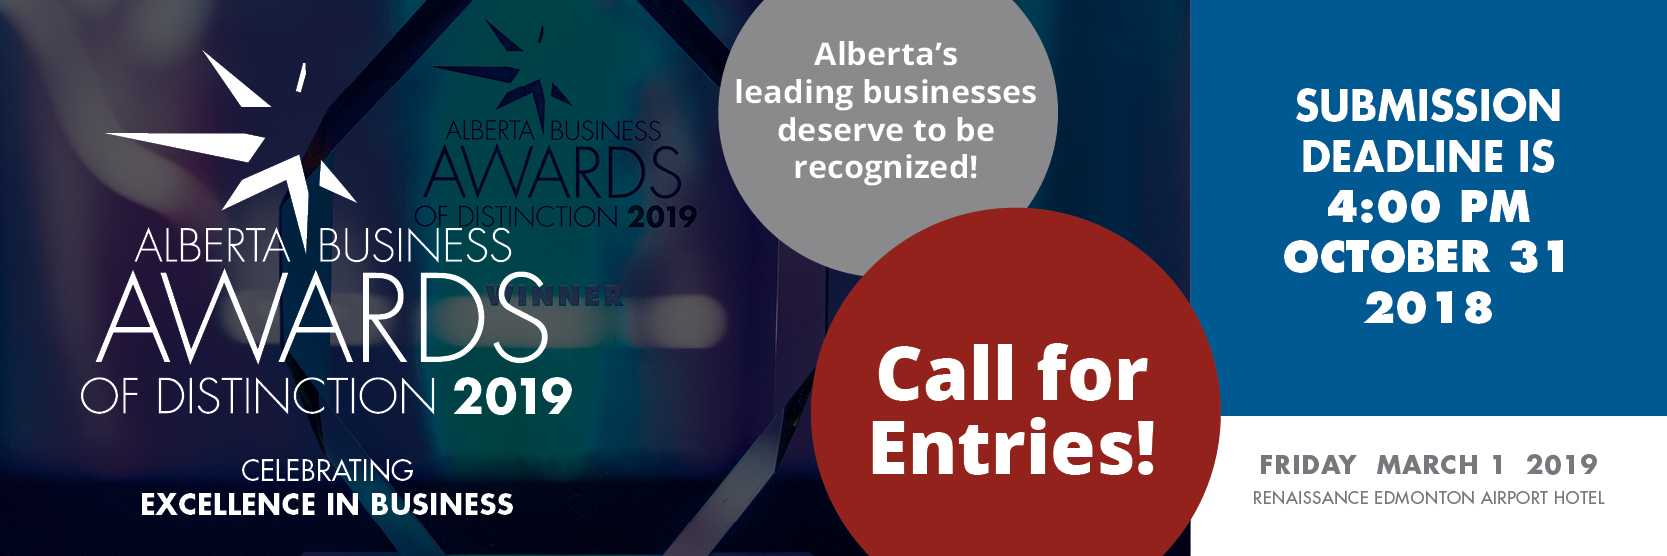 ABAD-2018-Call-for-Entries-WEB_1.jpg